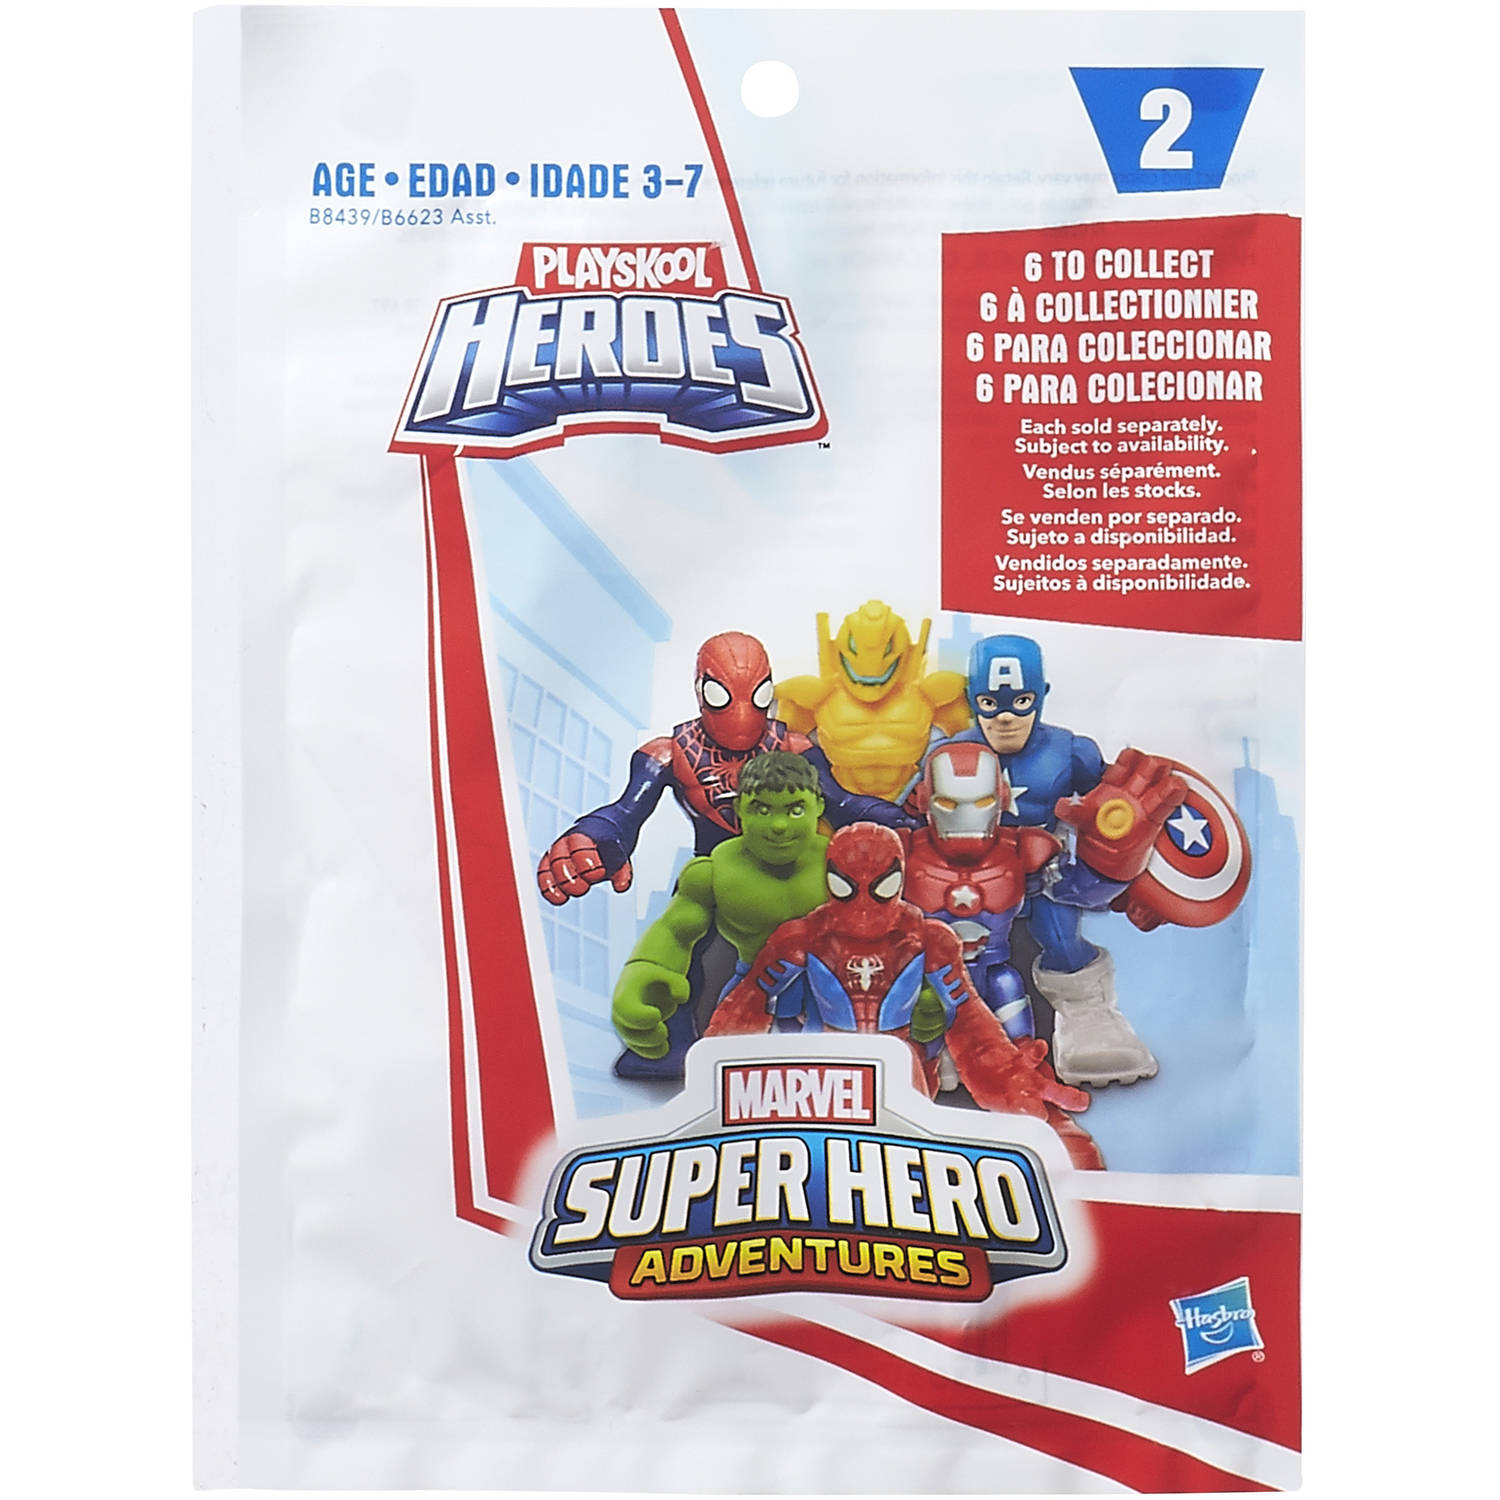 Playskool Heroes Marvel Super Hero Adventures Blind Bag by SUPER HERO ADVENTURE